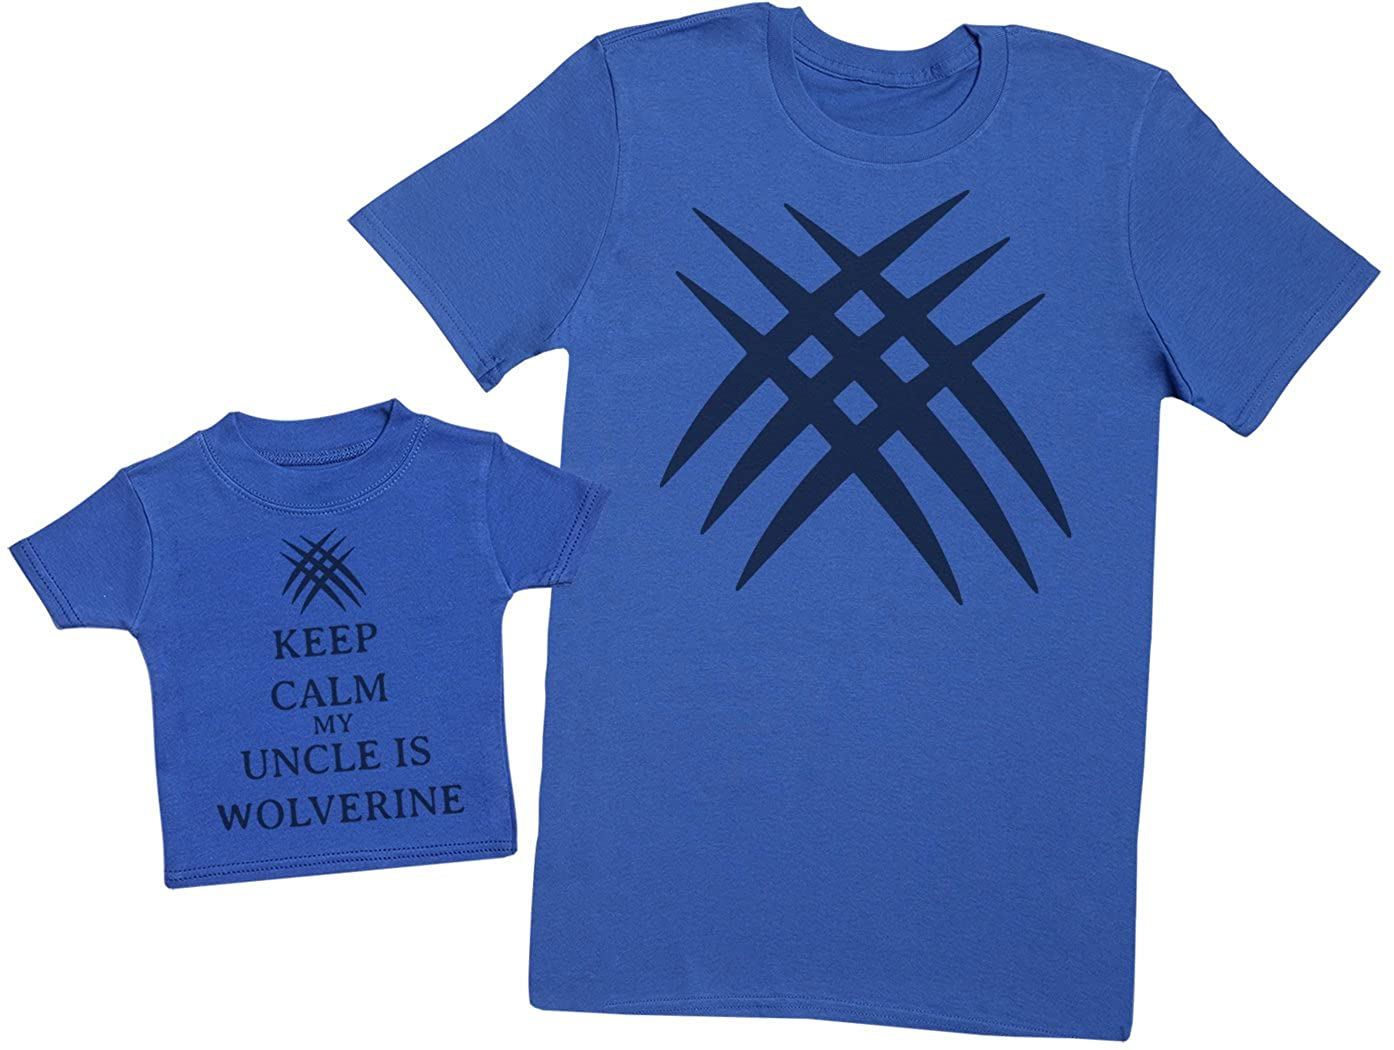 Mens T Shirt /& Baby T-Shirt Blue Matching Father Baby Gift Set Keep Calm My Uncle is Wolverine Large /& 3-6 Months